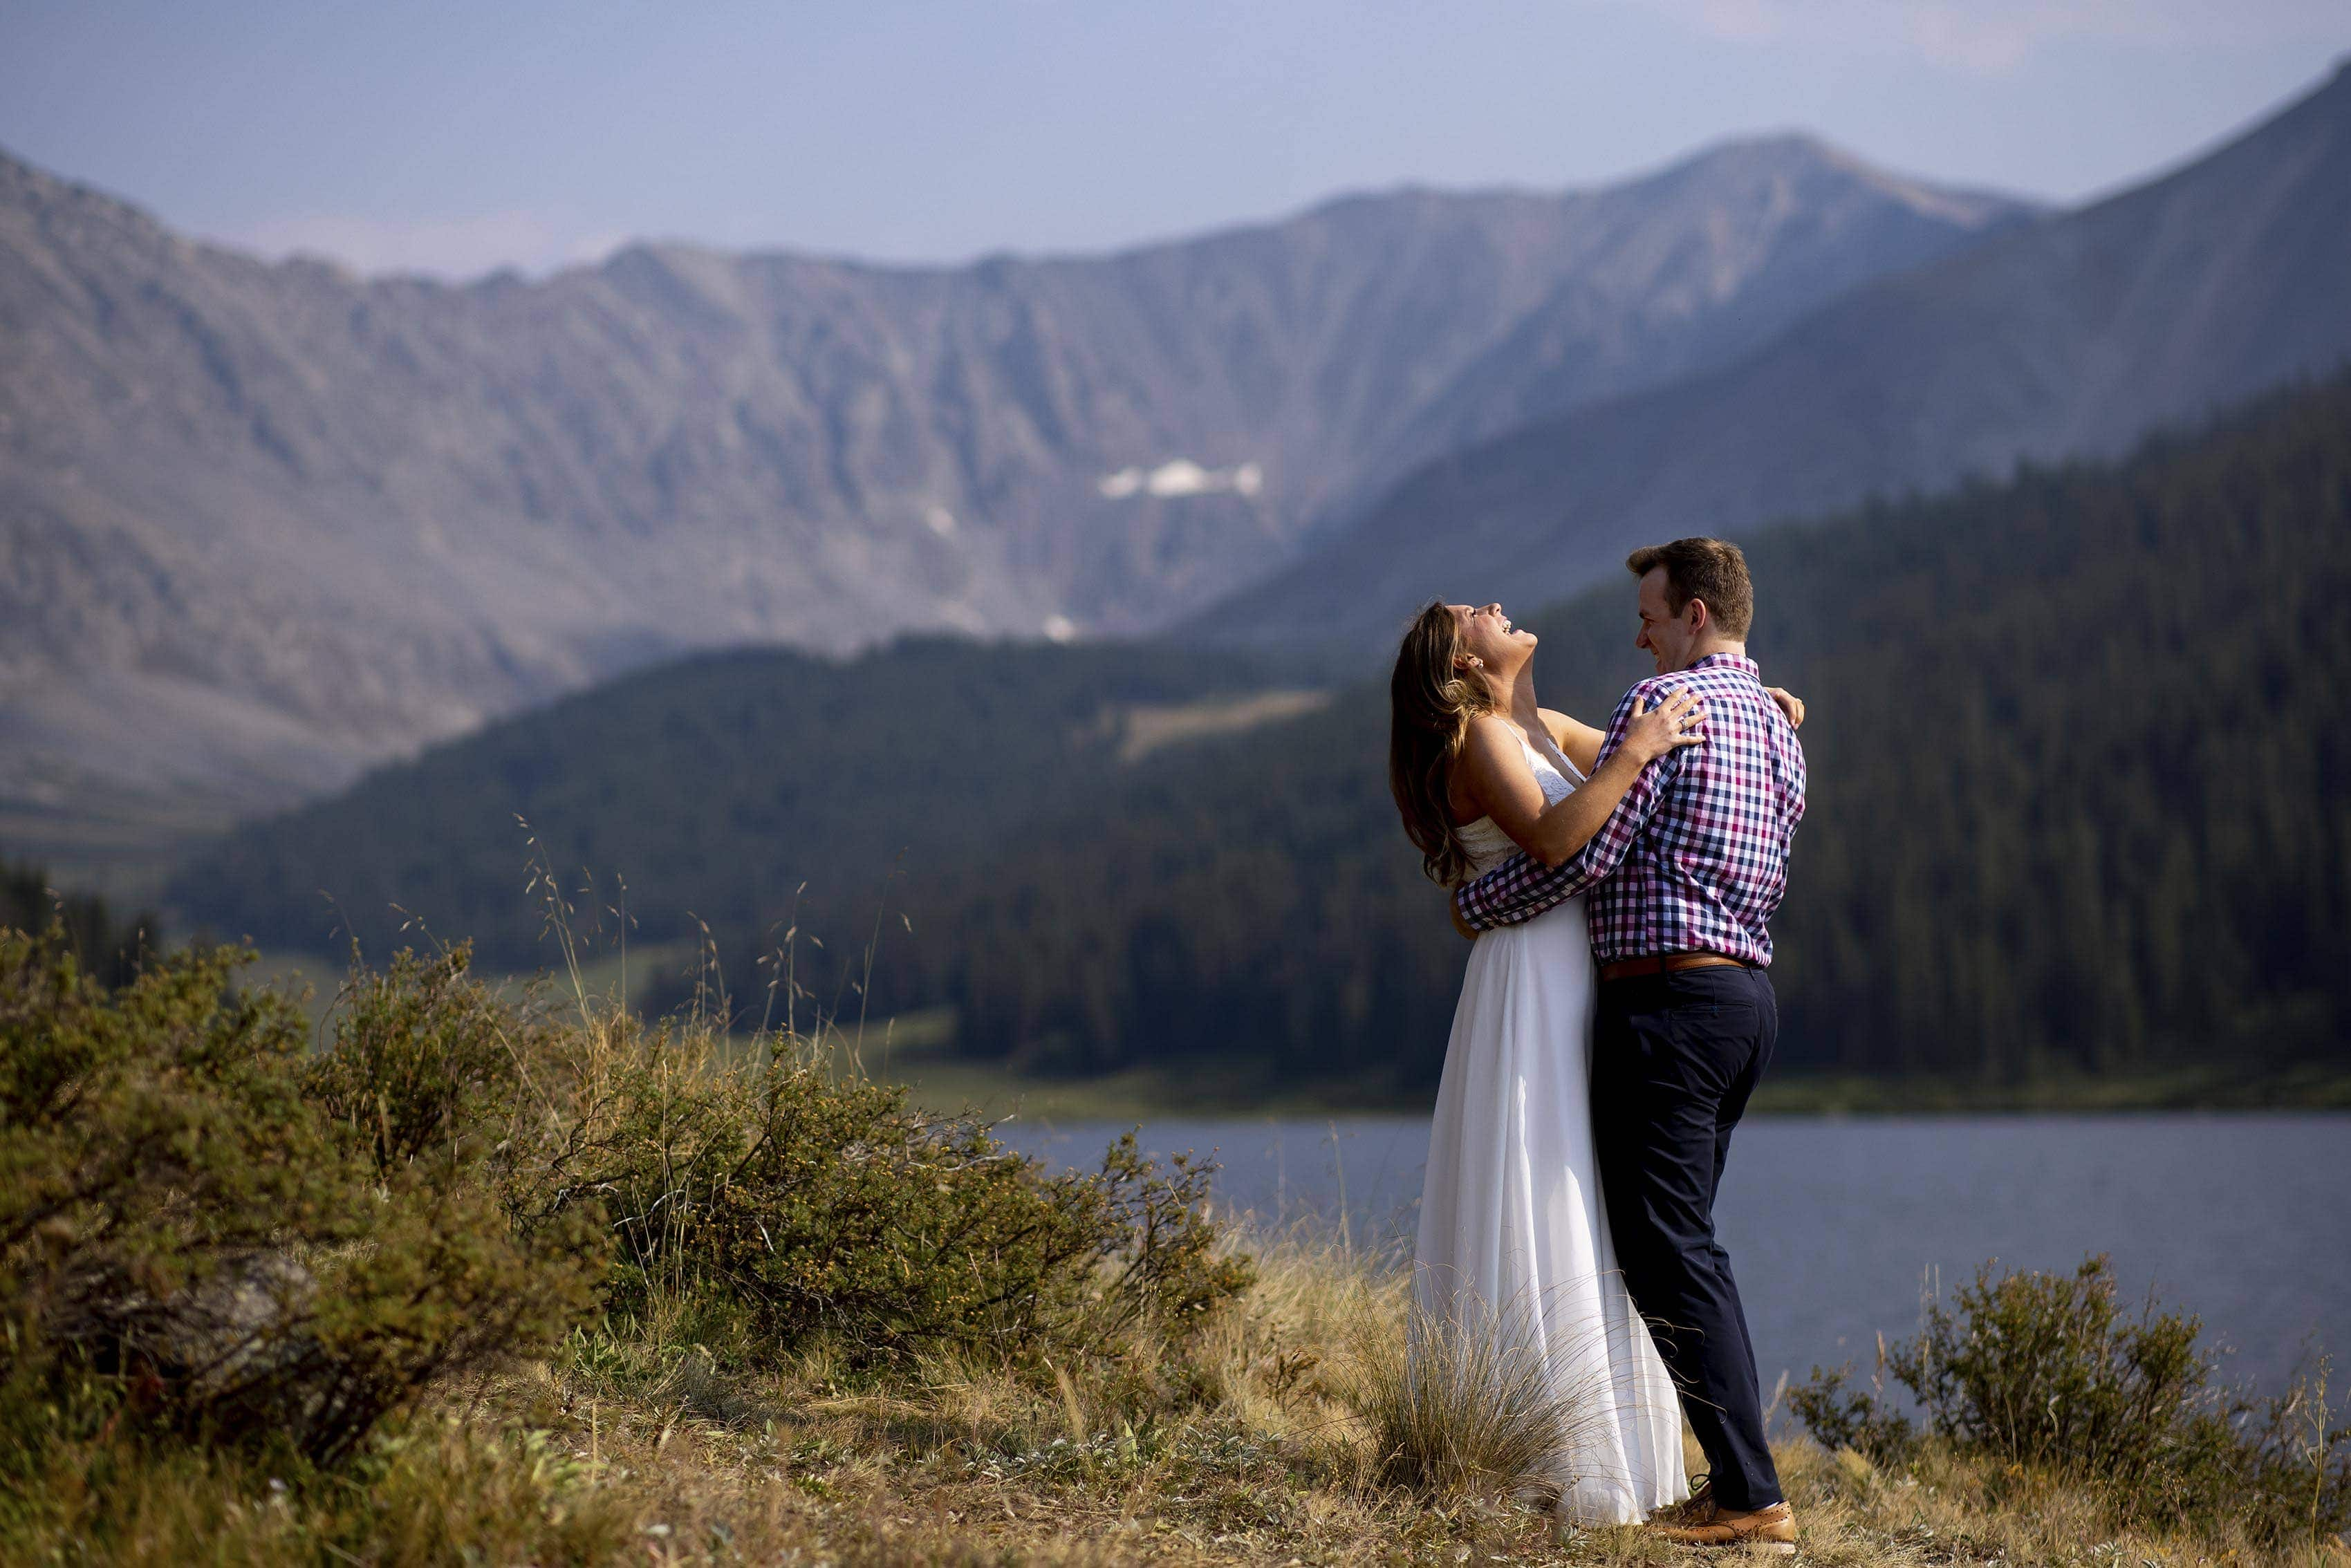 The couple share a laugh at Clinton Gulch Dam Reservoir during their wedding